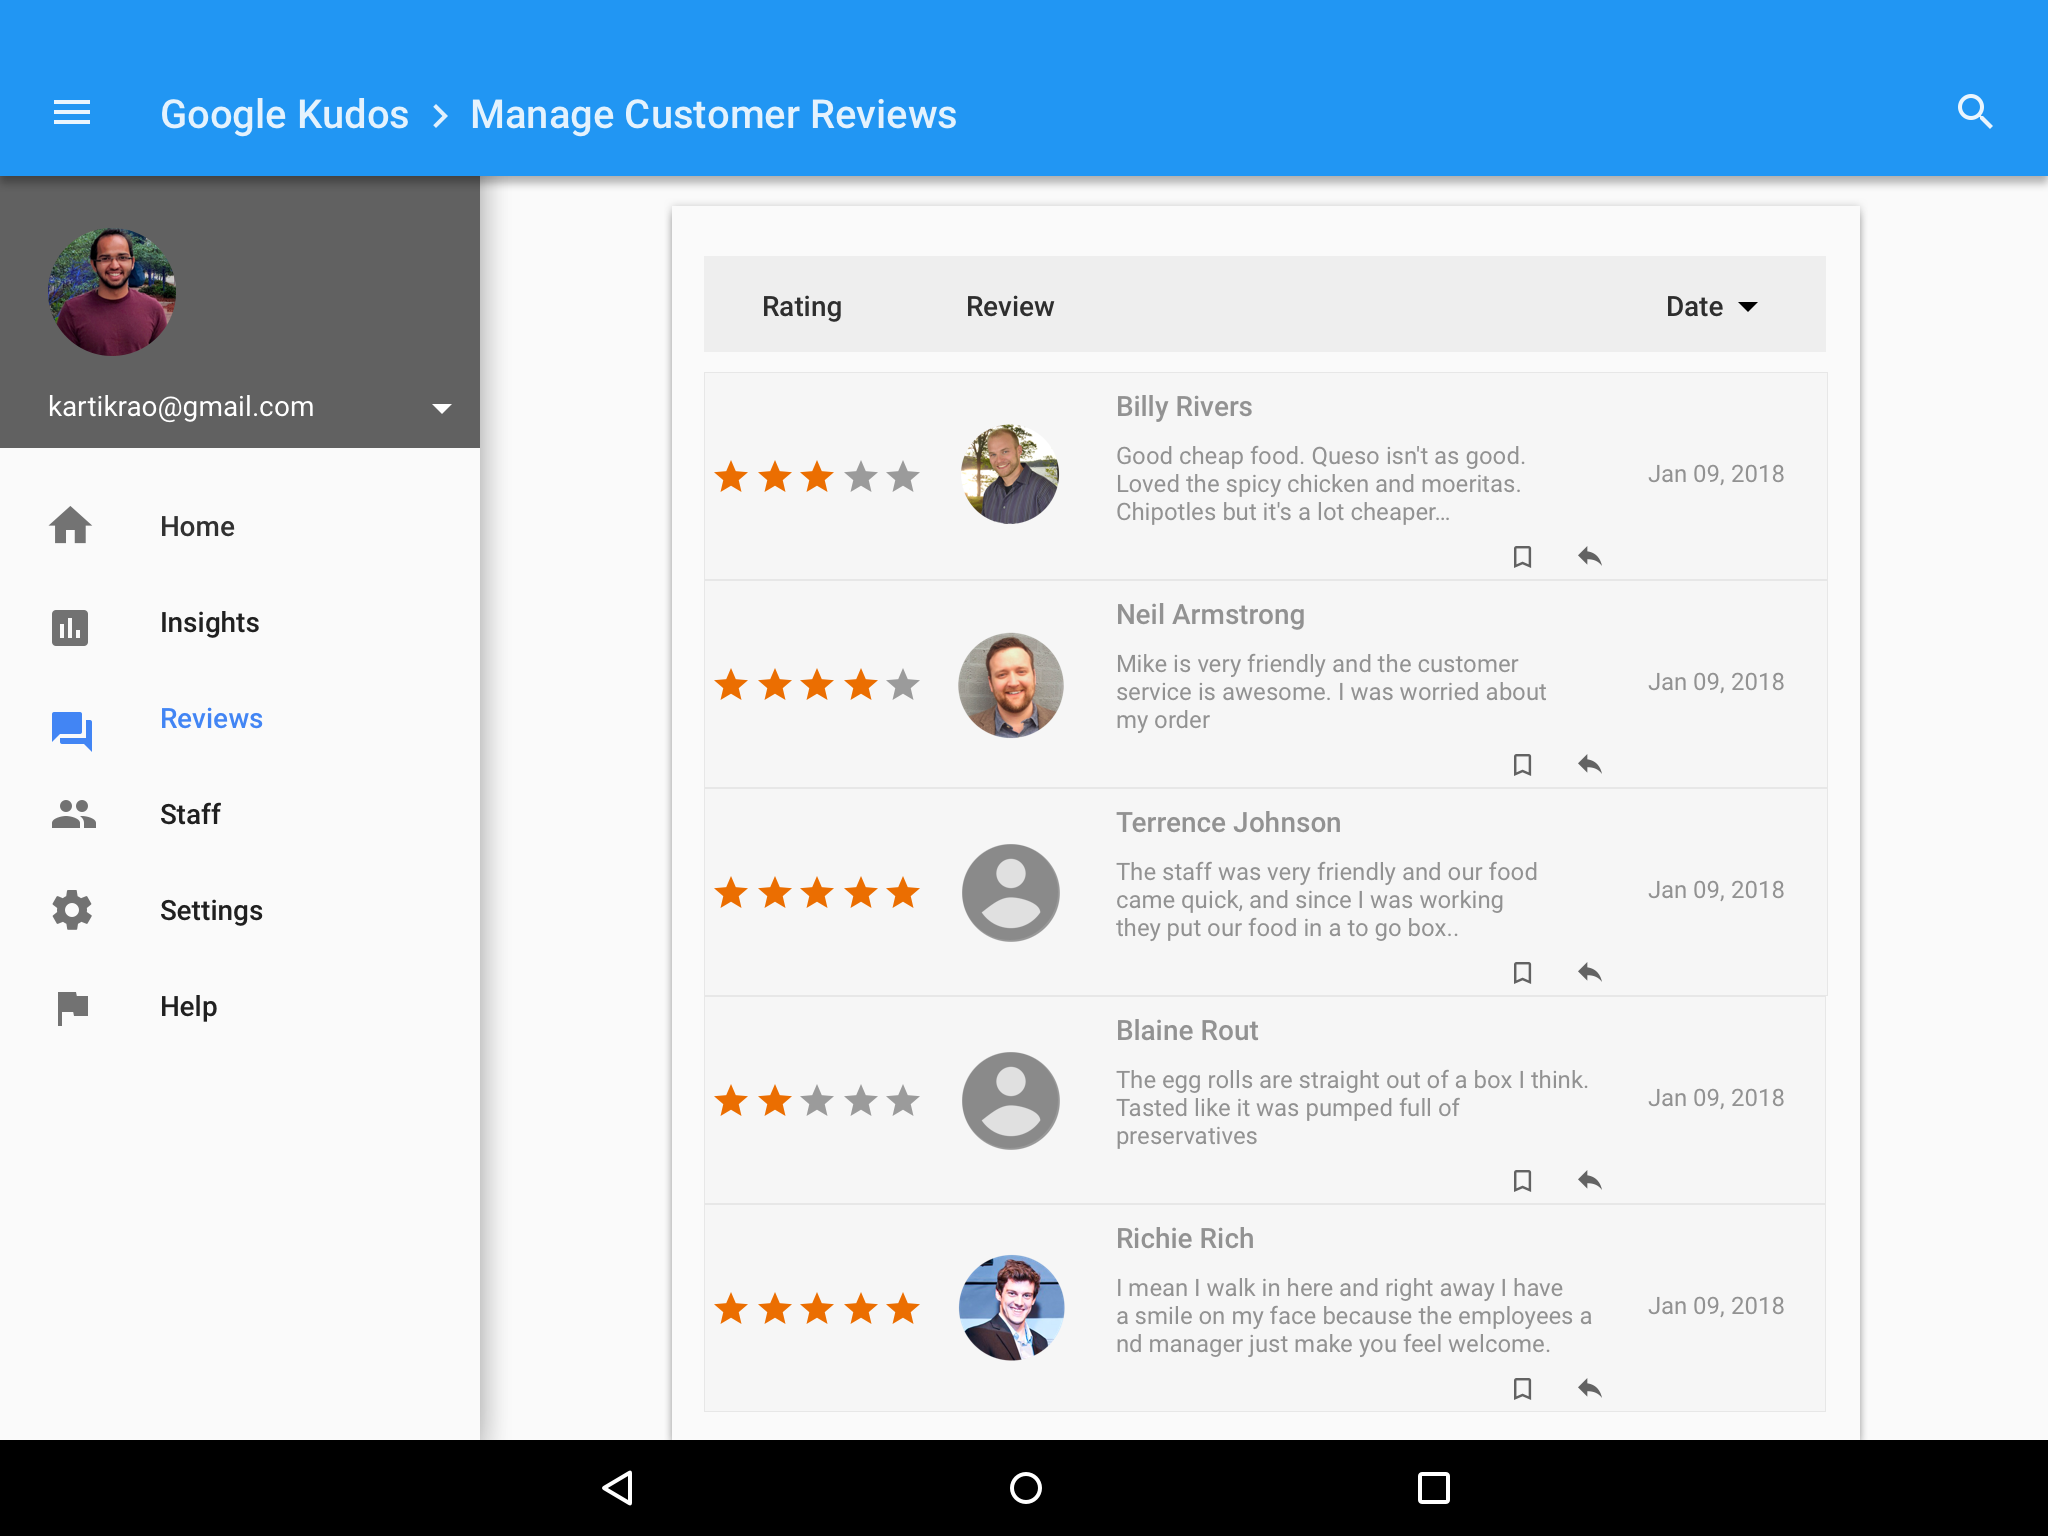 Kudos-Tablet-Manager-Insights